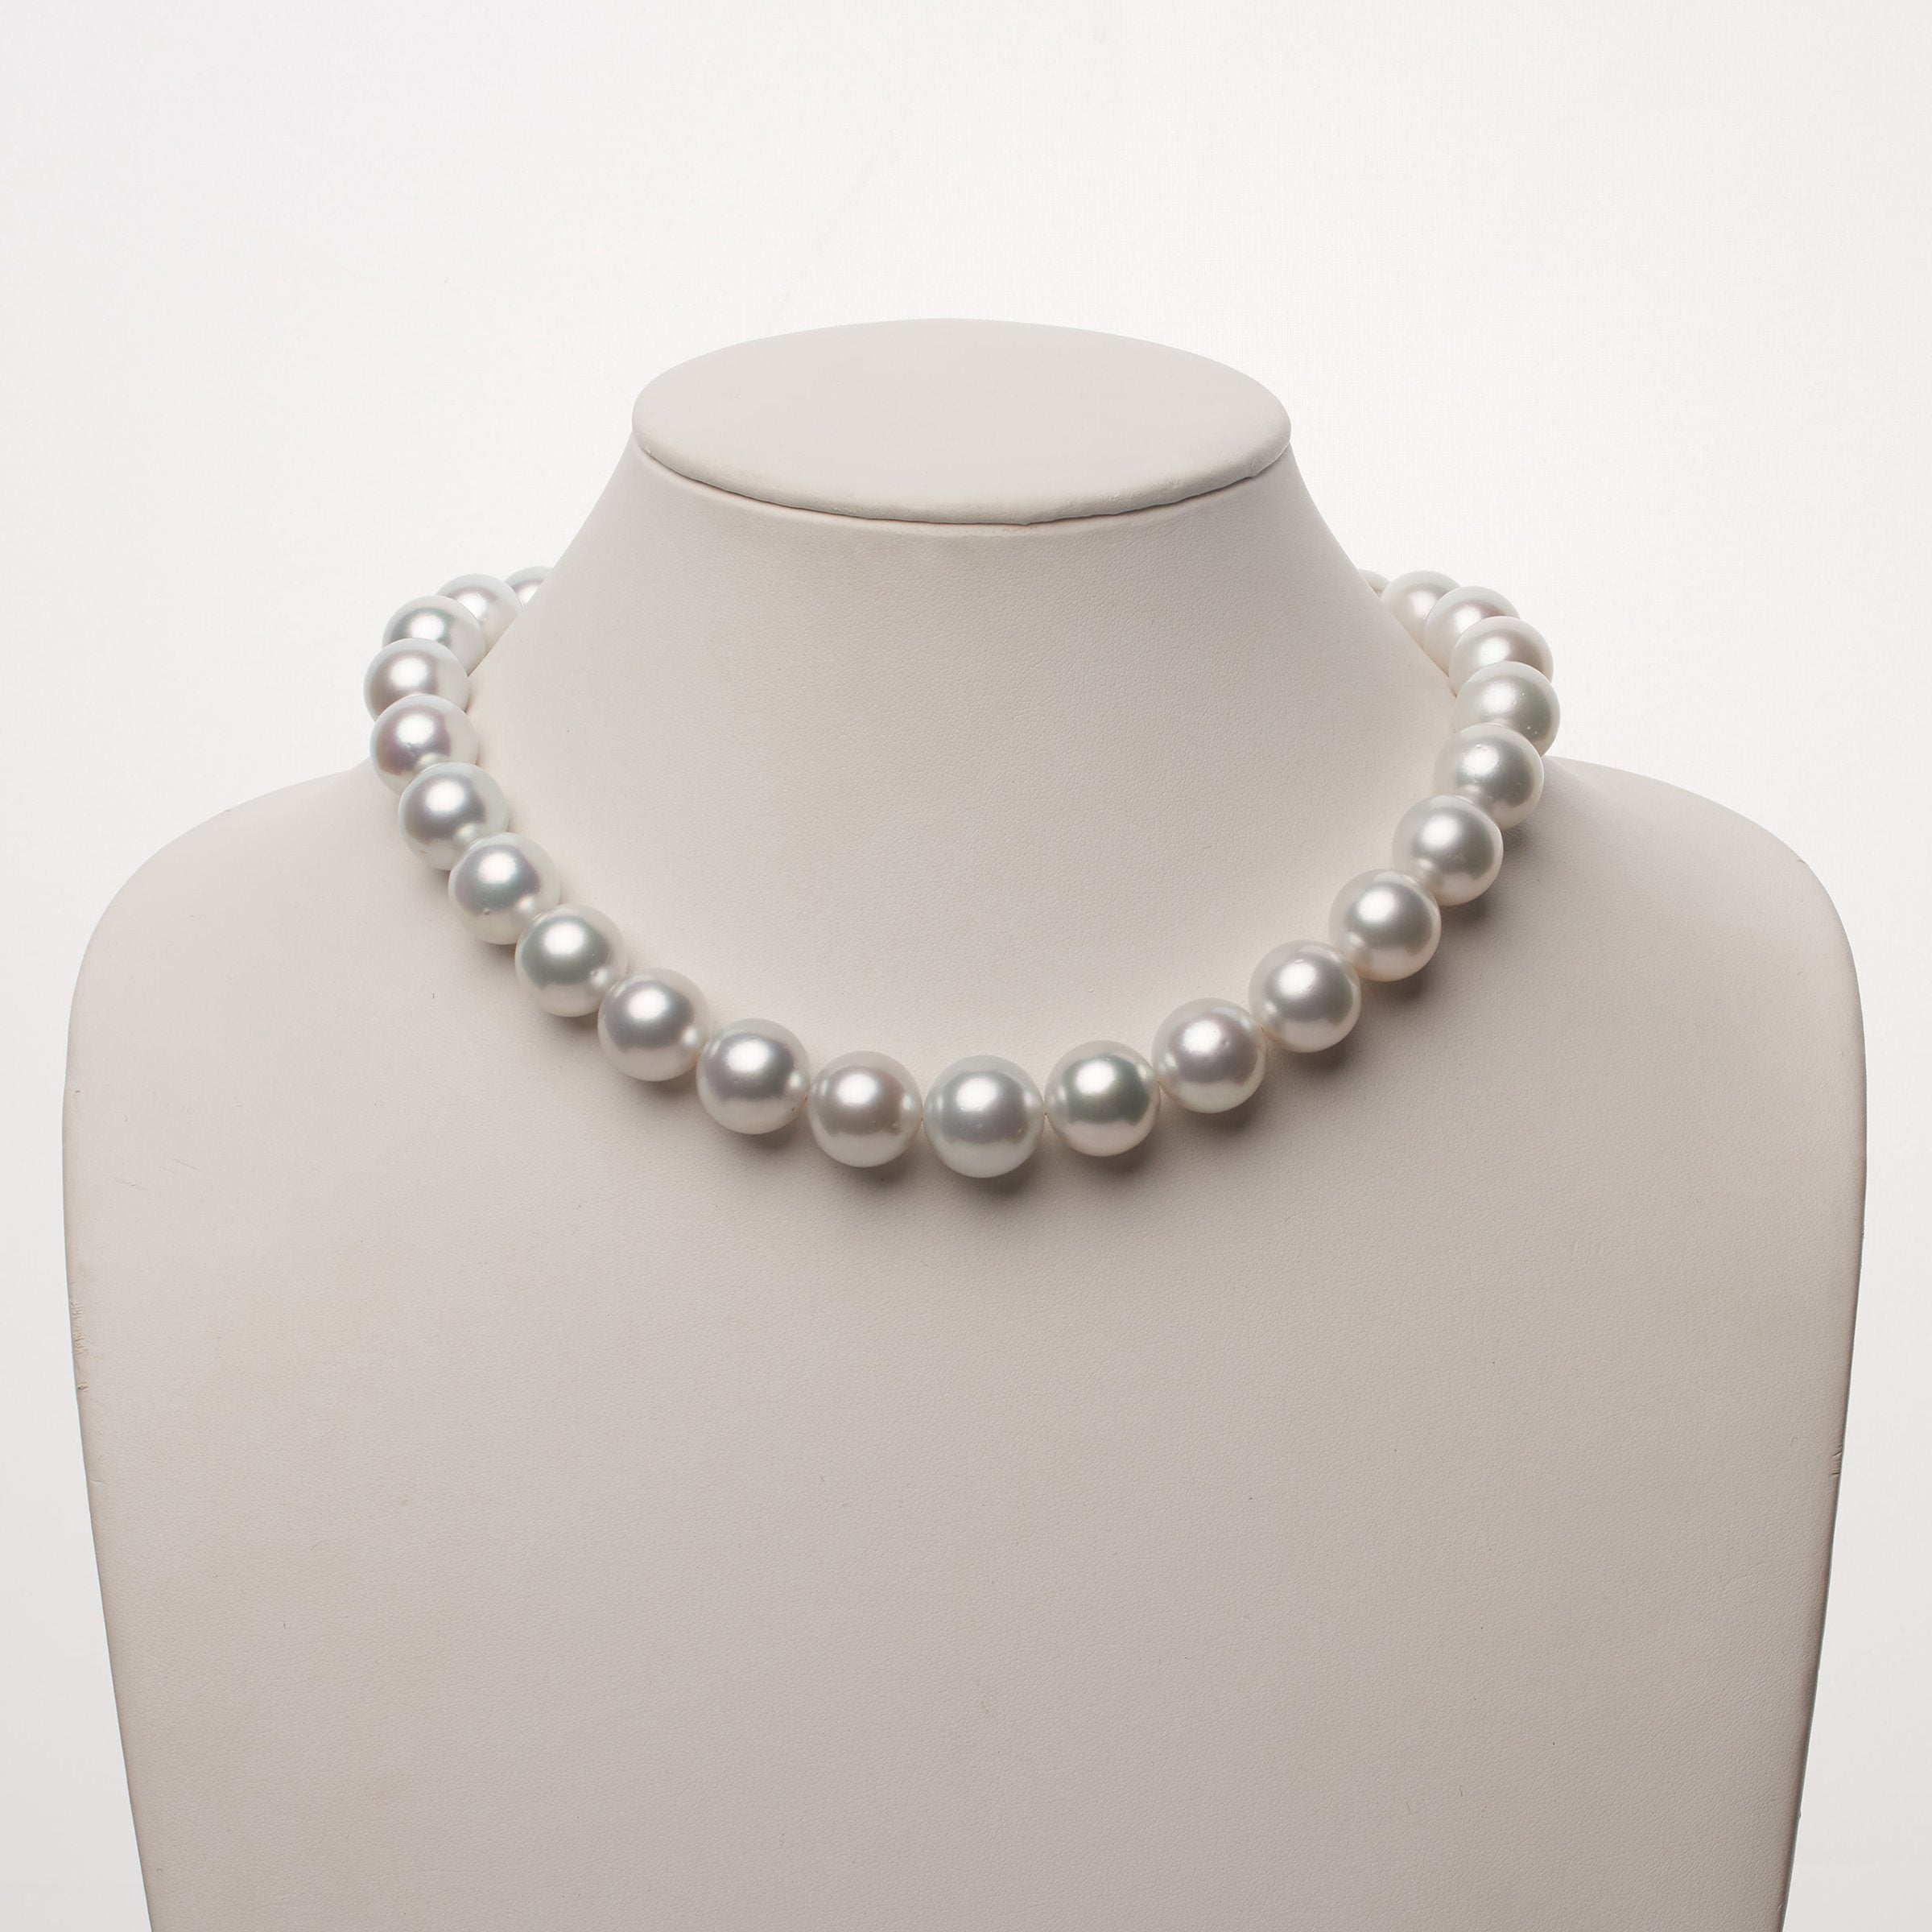 The Lieto White South Sea Pearl Necklace